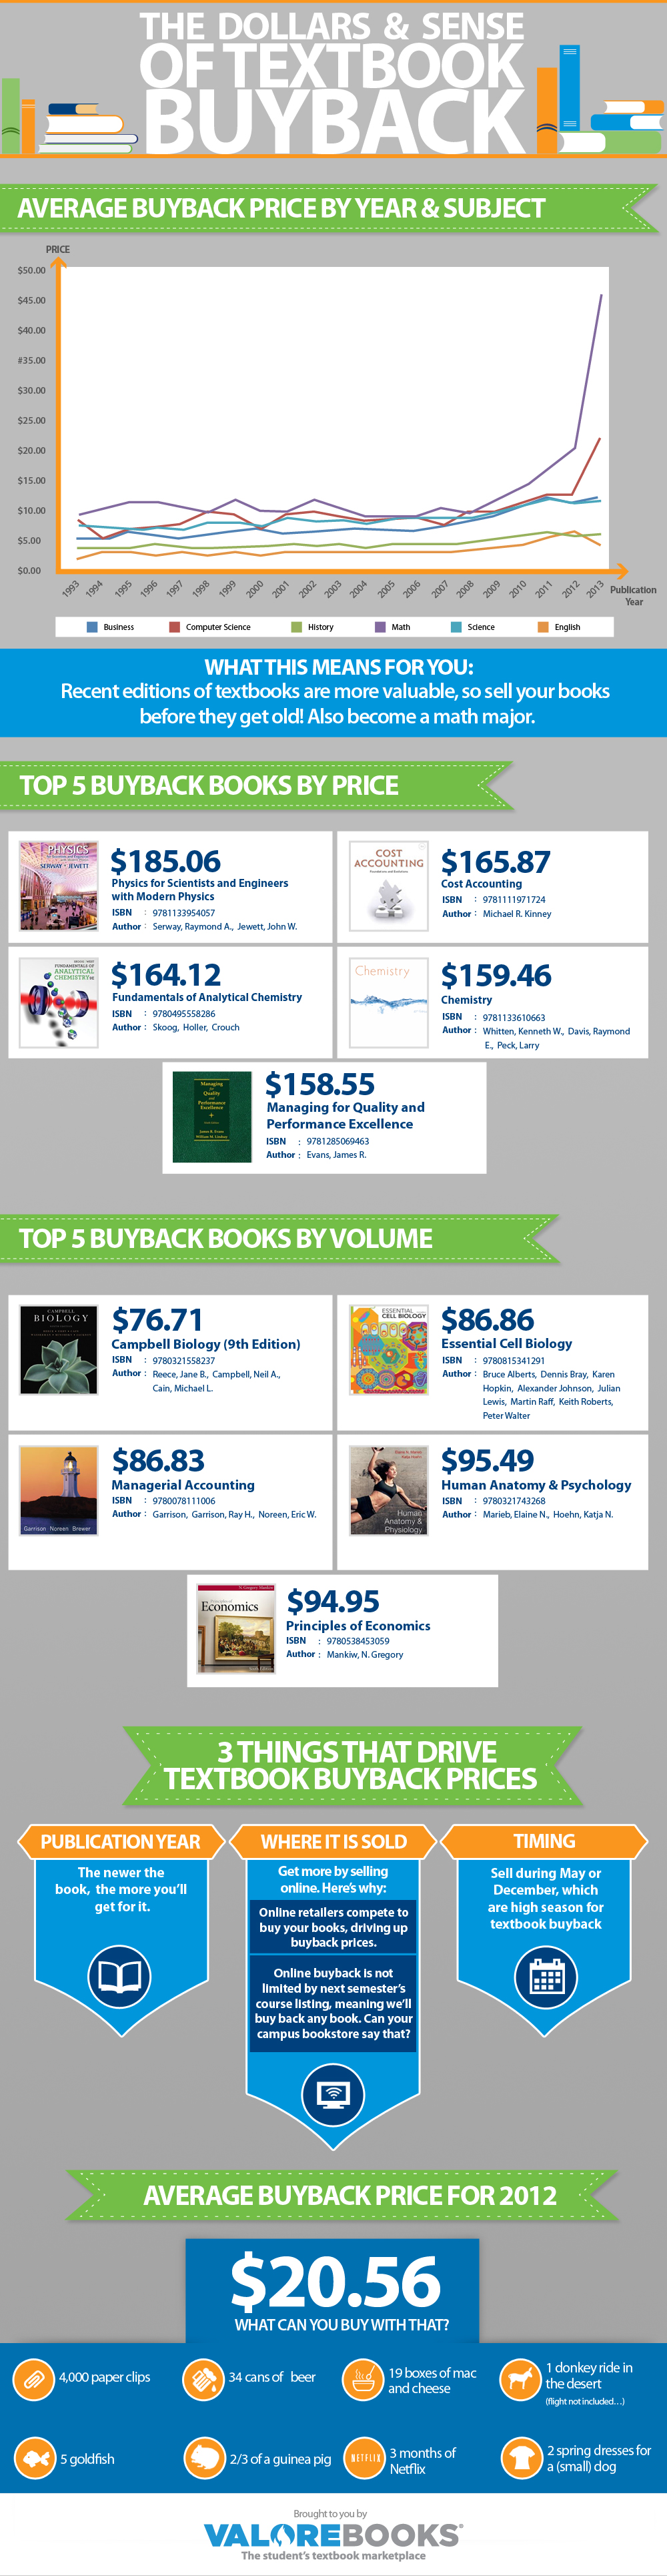 The Dollars and Sense of Textbook Buyback